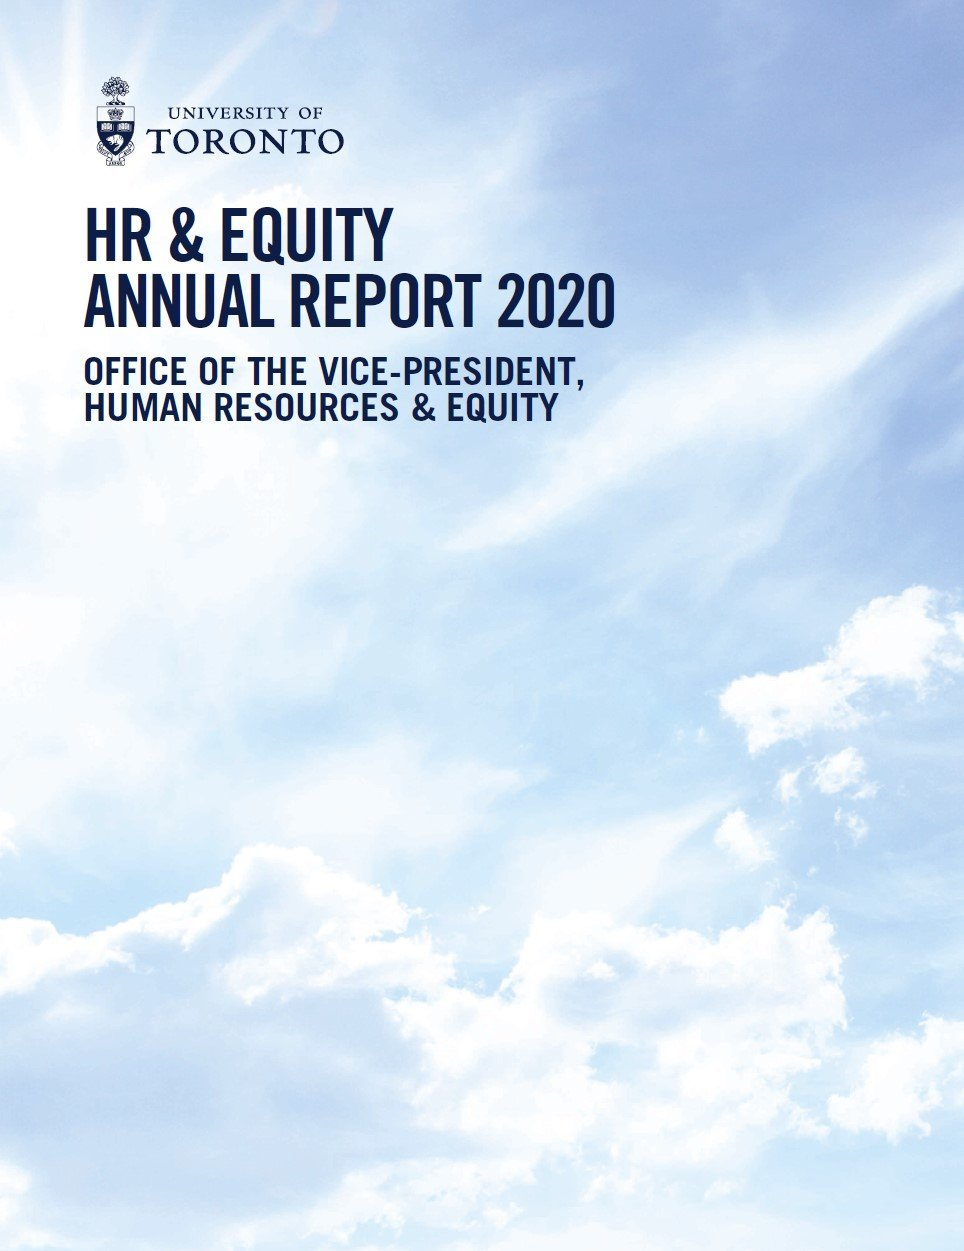 Read the 2020 Human Resources & Equity Annual Report